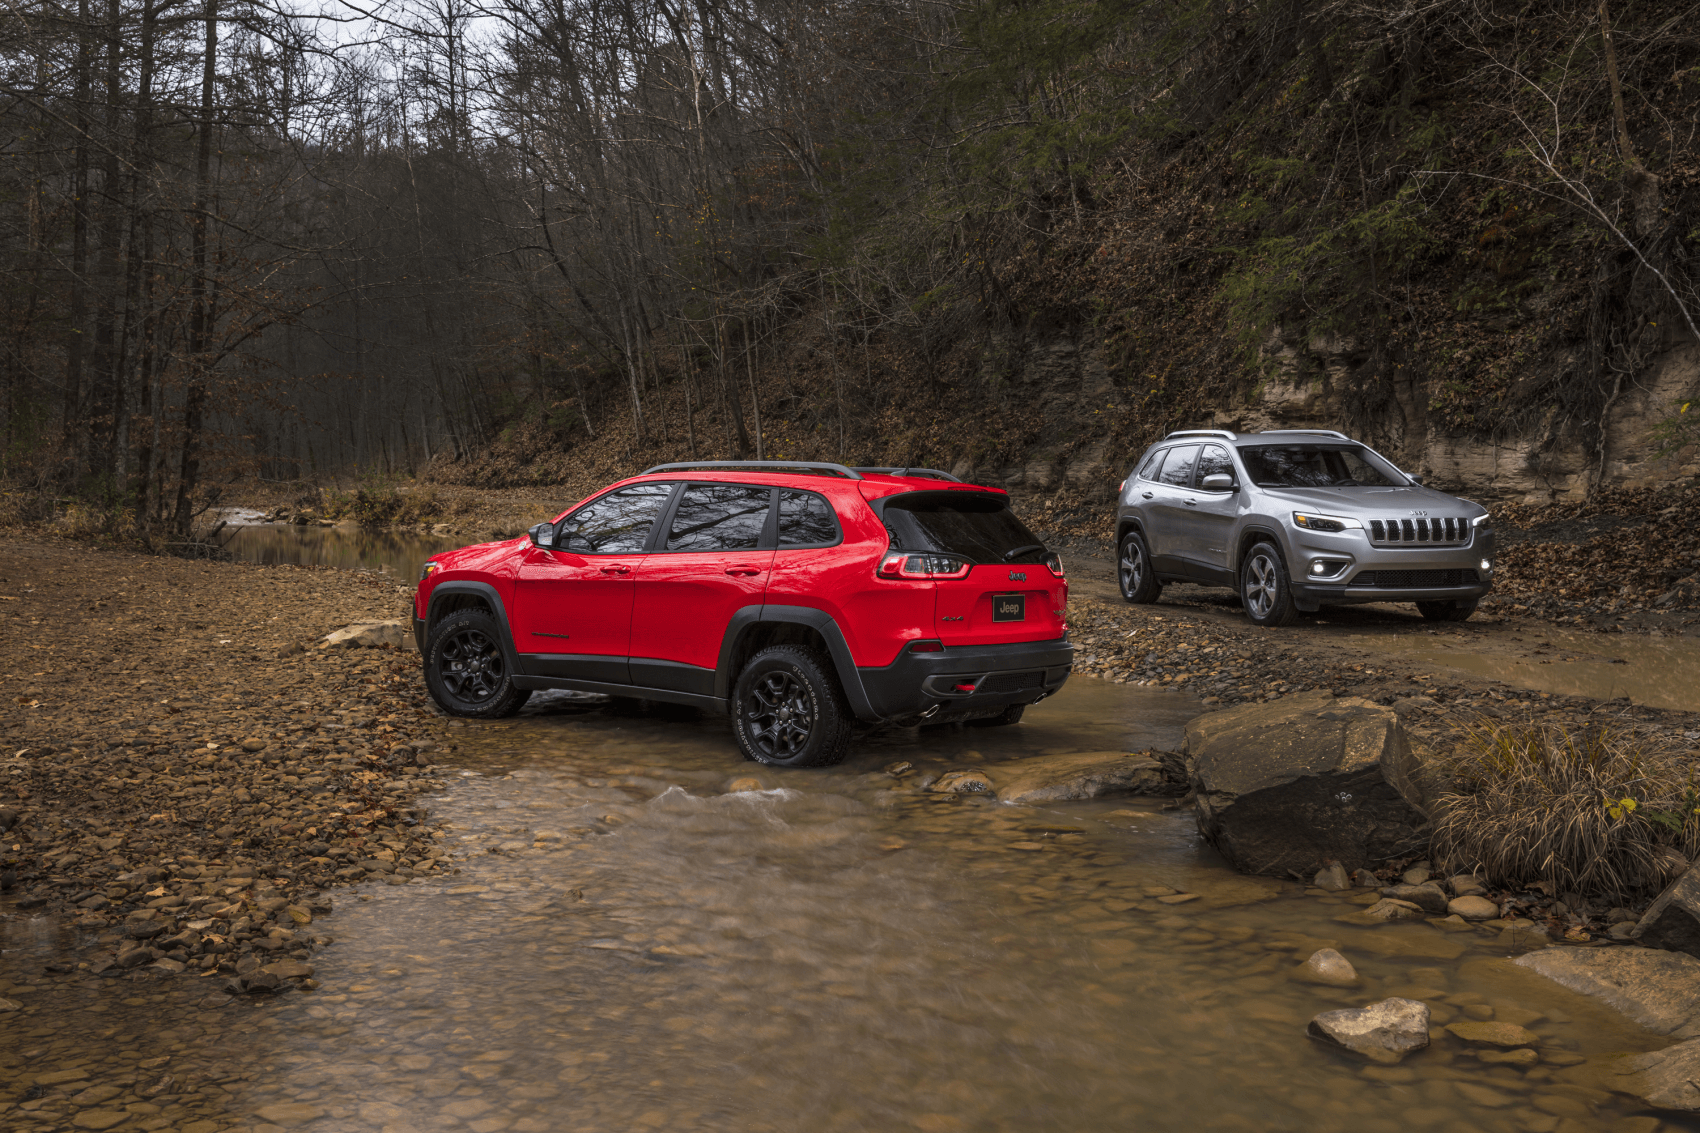 2021 Jeep Cherokee Silver Red Stream